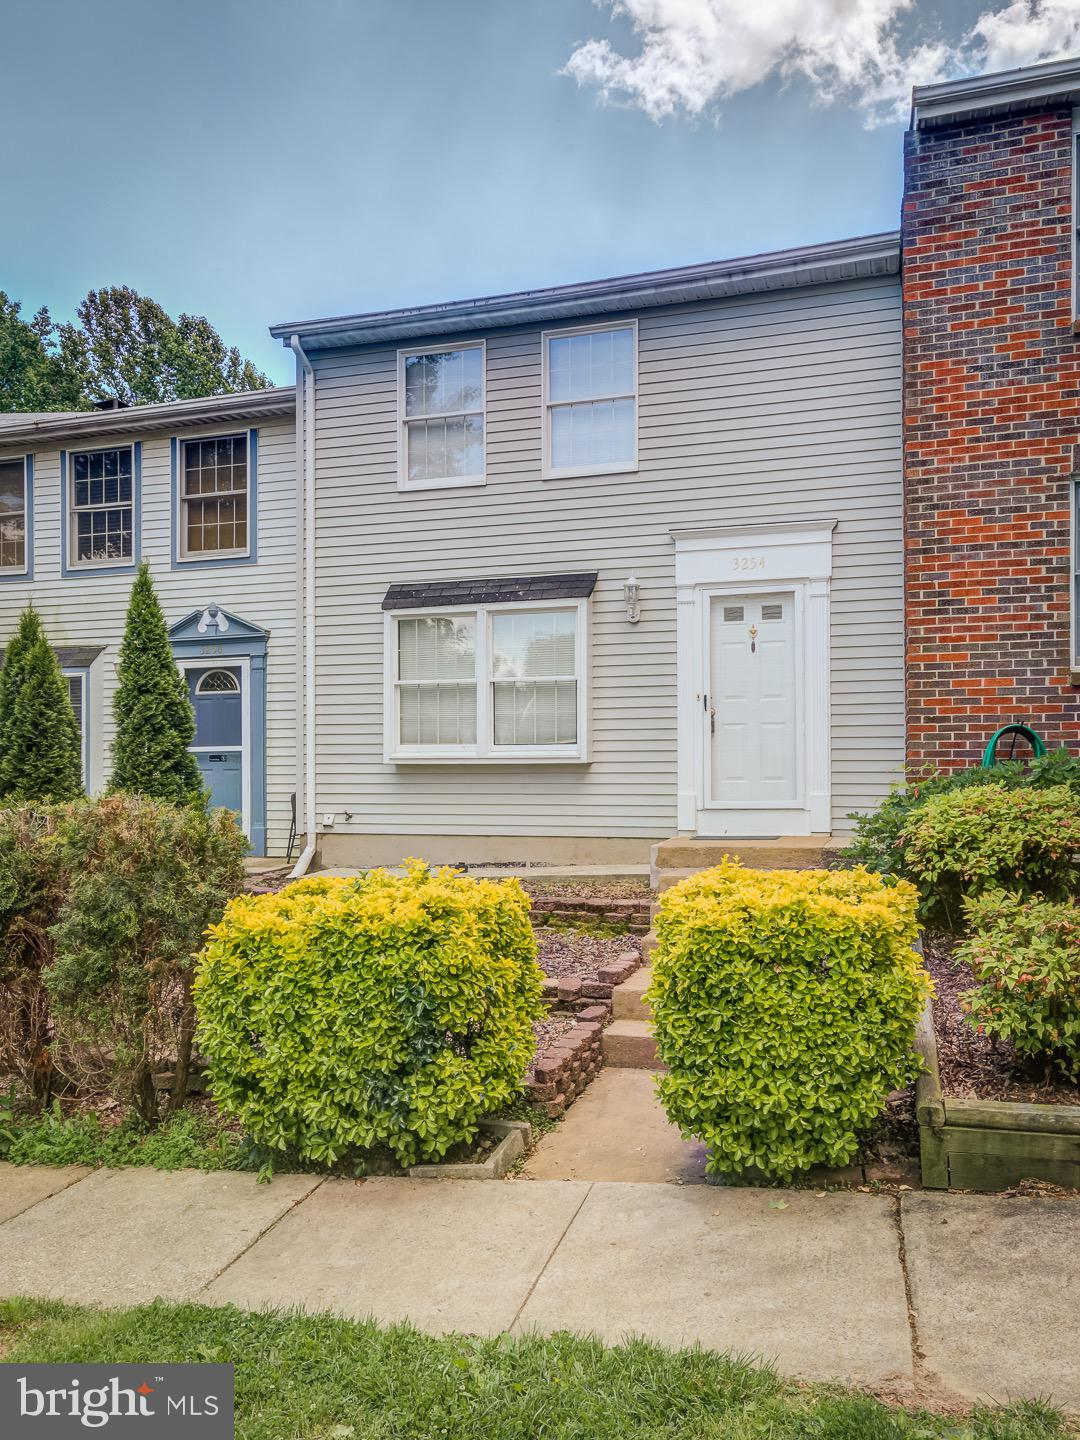 Completely remodeled on 2015! Hardwood floors, carpet. Kitchen w/stainless appliances, granite count